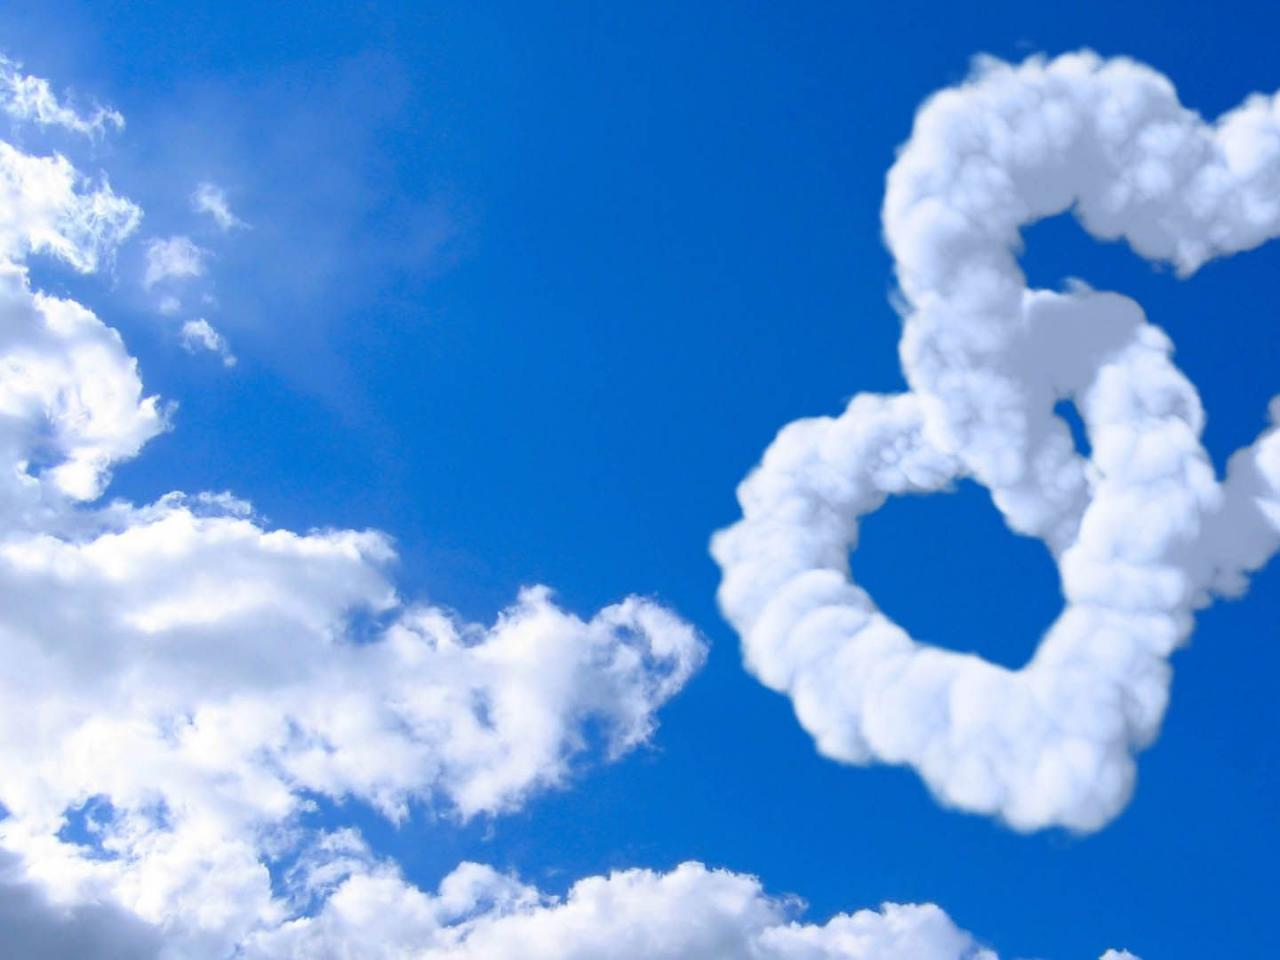 Good Morning Animation Wallpaper Heart Shaped Cloud 03 Of 57 Animated Double Heart Clouds